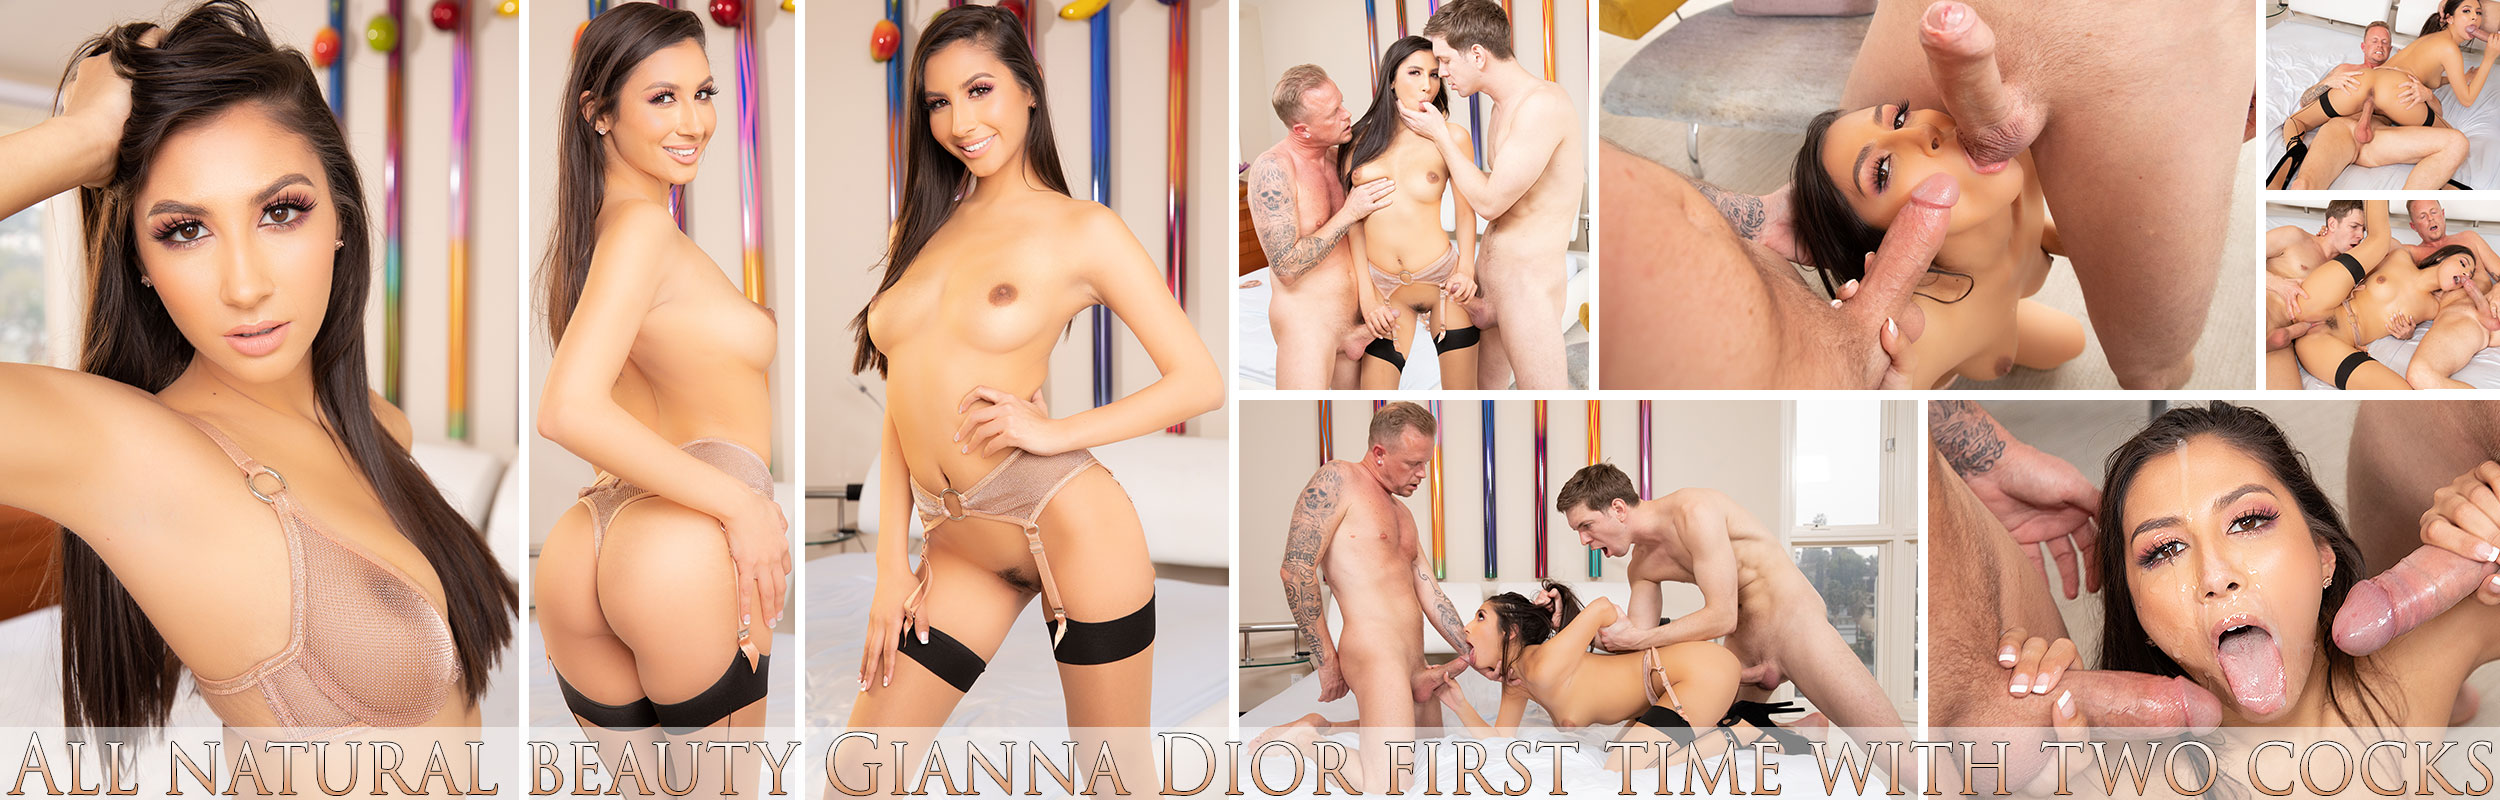 All natural beauty Gianna Dior first time with two cocks